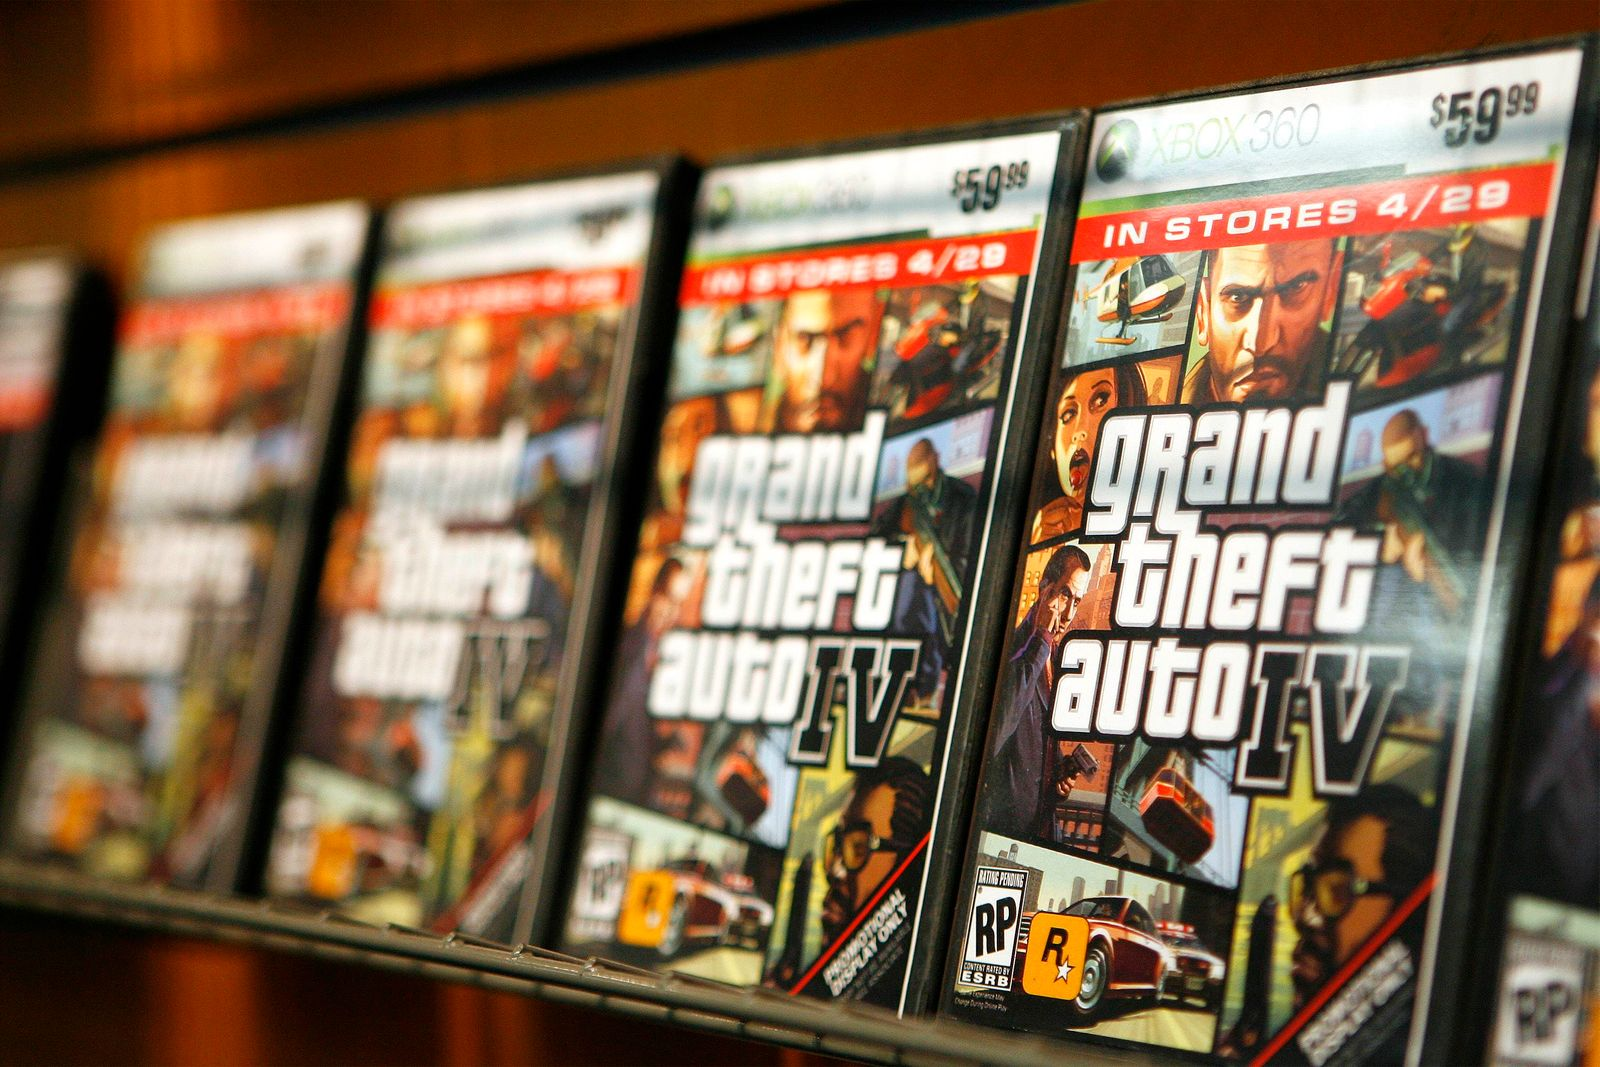 """""""Grand Theft Auto IV"""" video game boxes are displayed on a rack inside a GameStop store in New York prior to midnight release of the video game"""